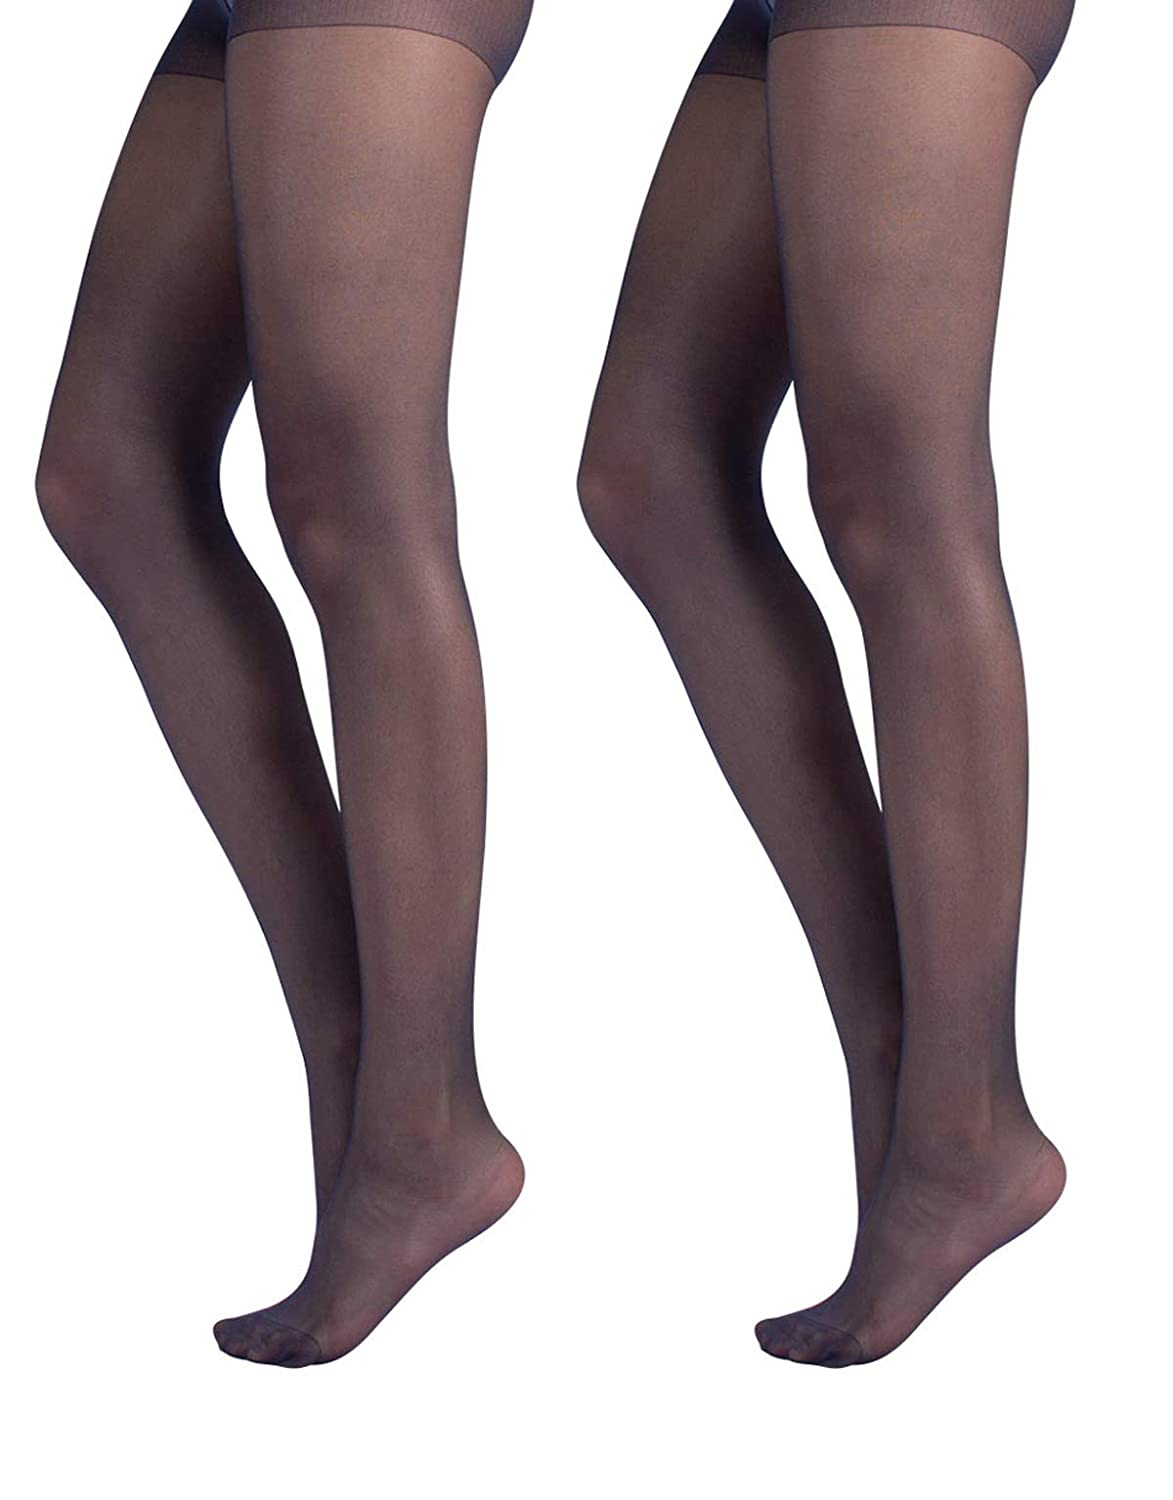 8e97360d00a 2 PAIRS Sheer tights Every day Pantyhose Women Tights Stockings Sheer  Nylons at Amazon Women s Clothing store